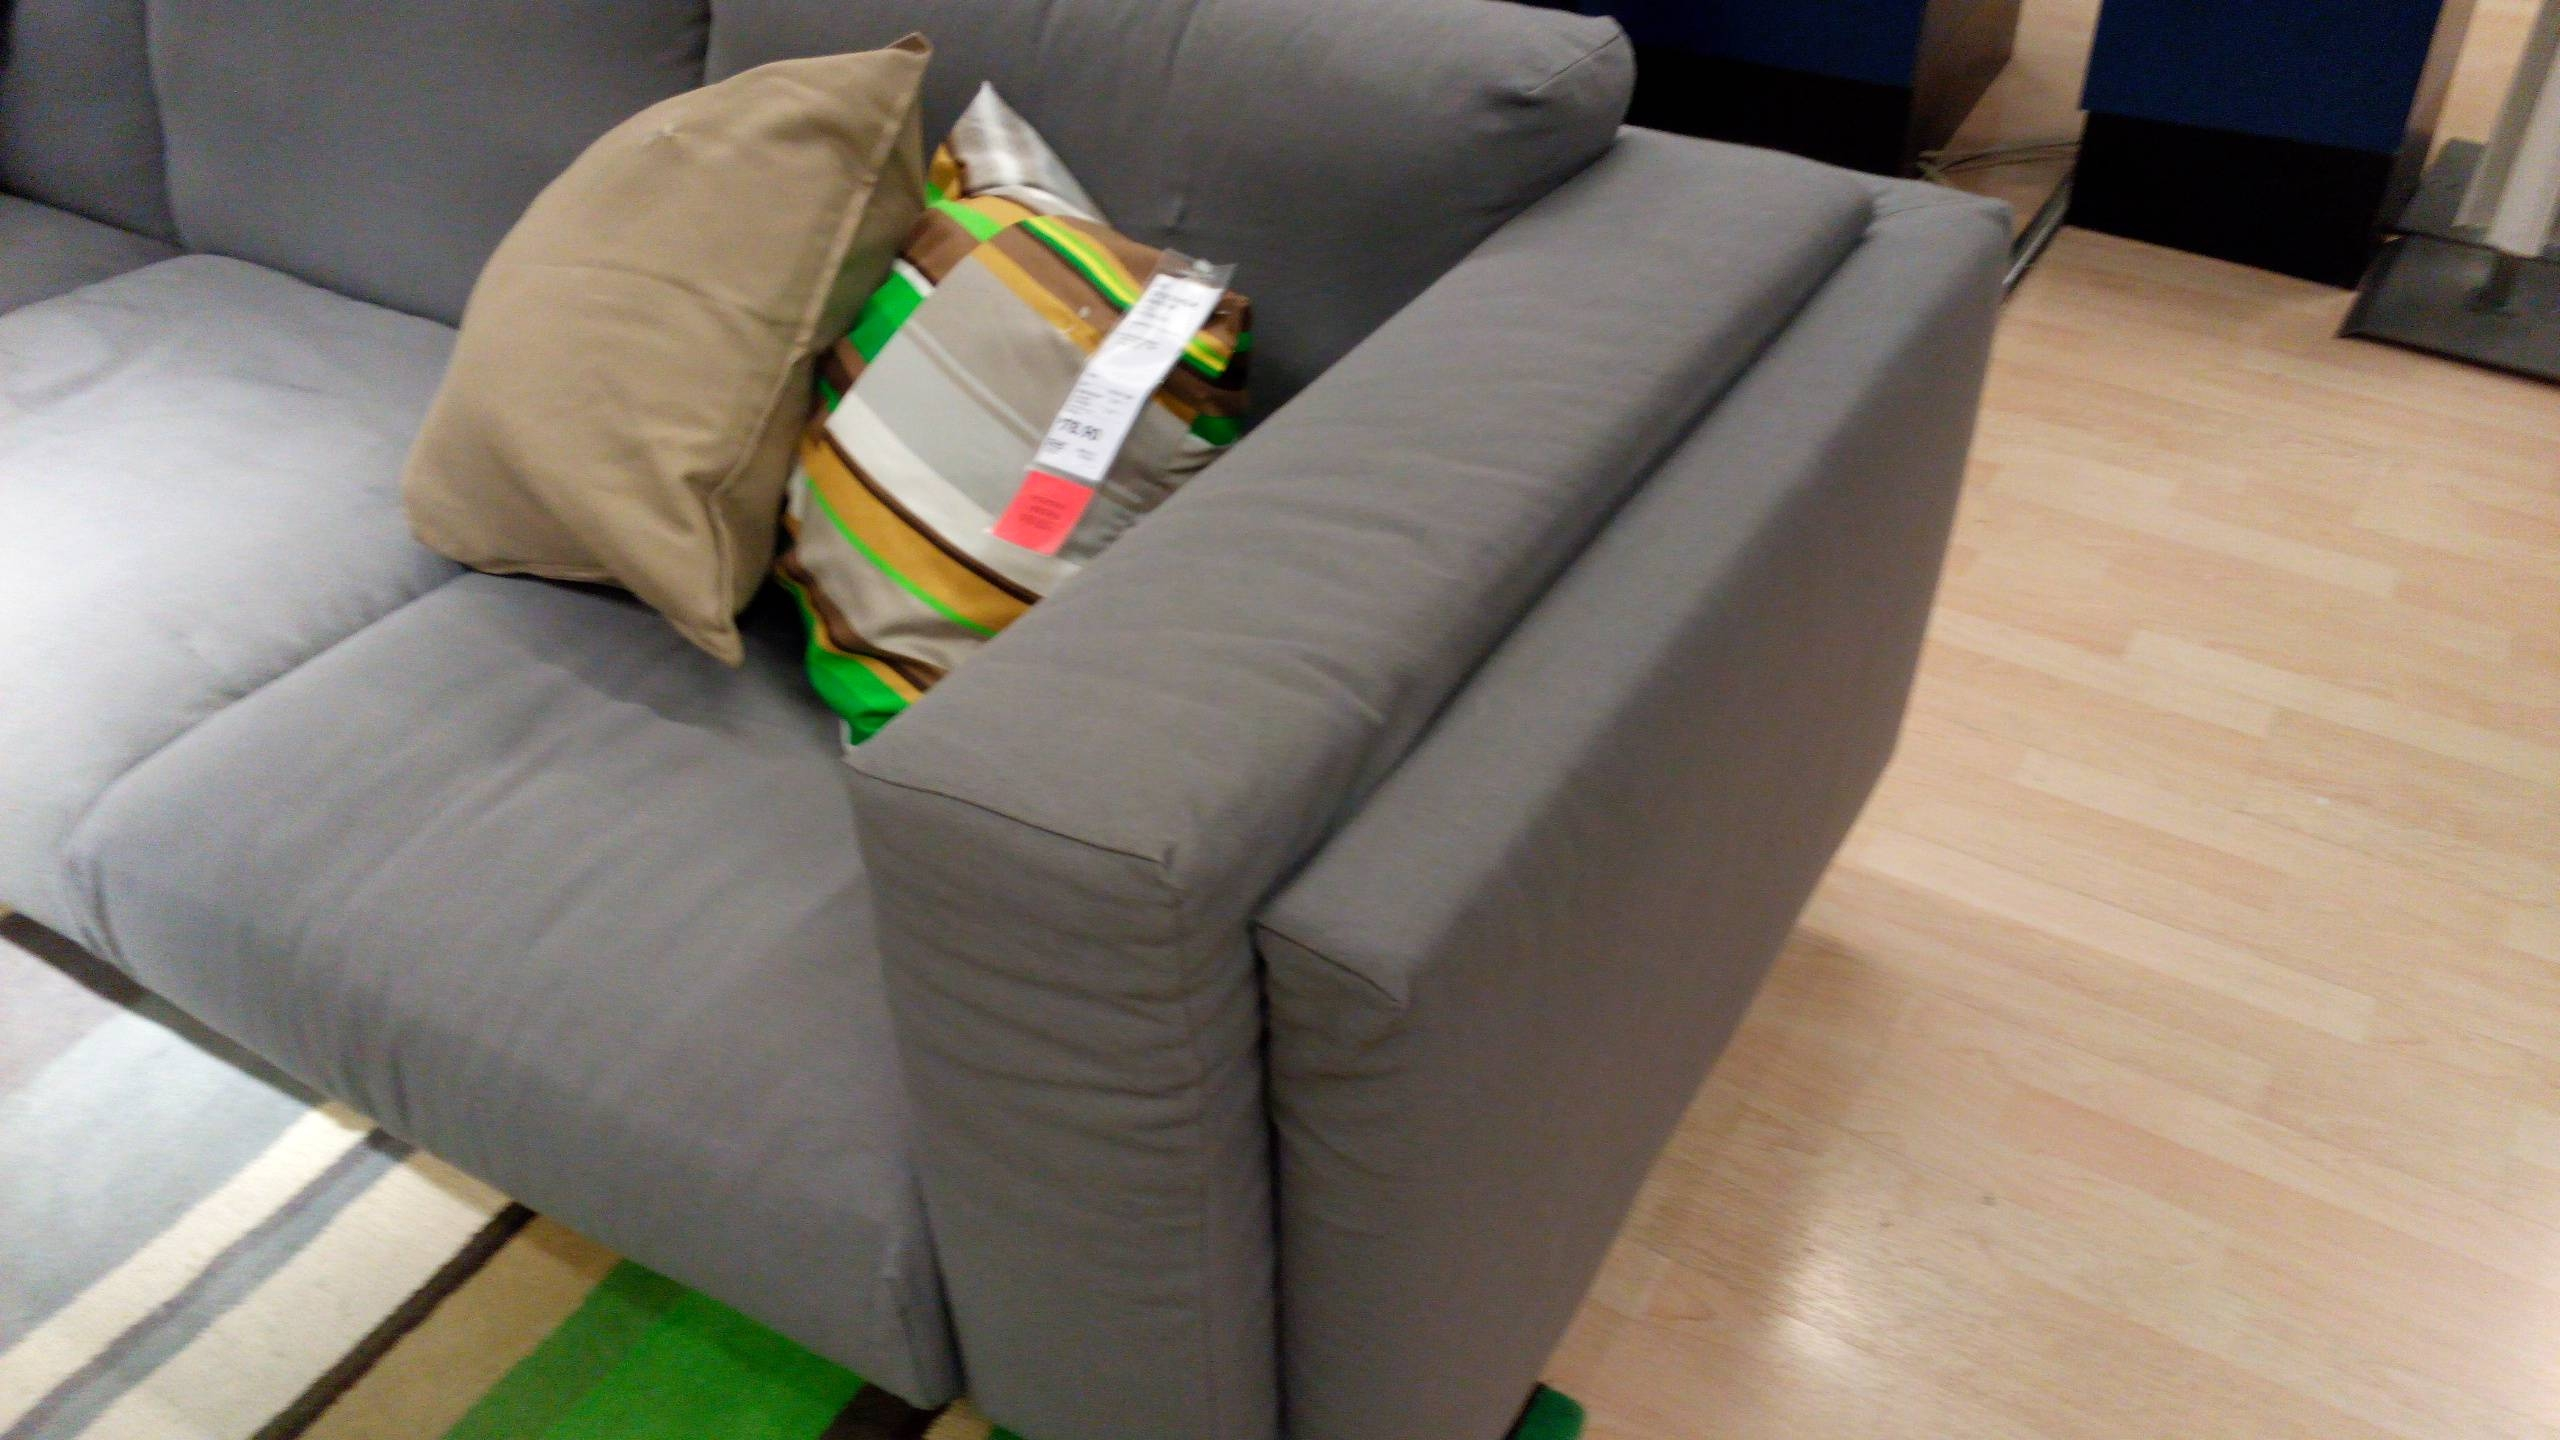 Ikea Nockeby Sofa Review - New Ikea Couch Series Mid 2014 throughout Mid Range Sofas (Image 17 of 30)